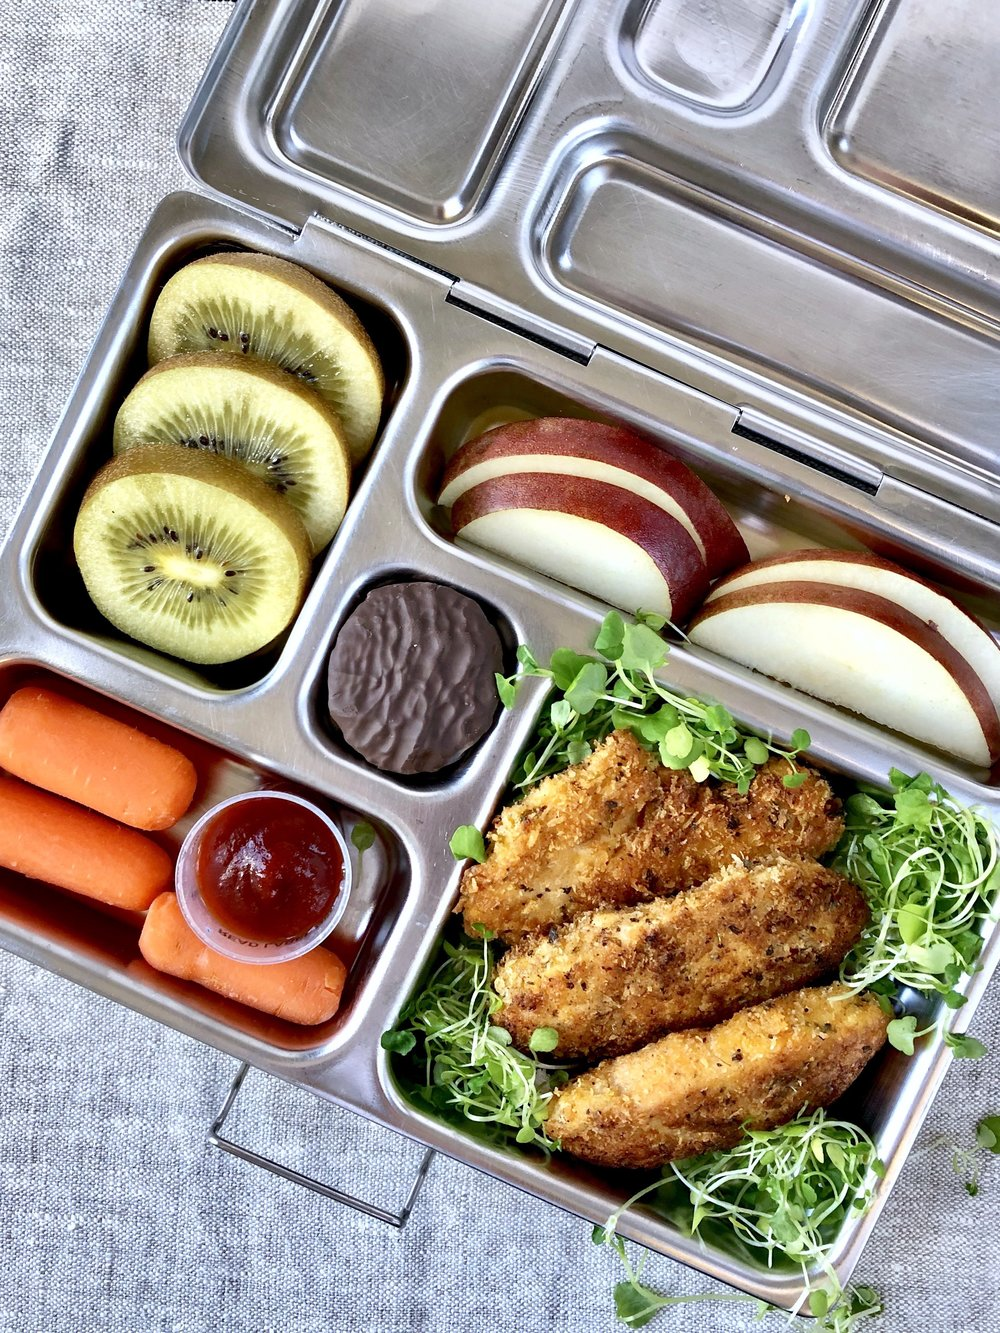 homemade dairy free chicken tenders in a lunchbox